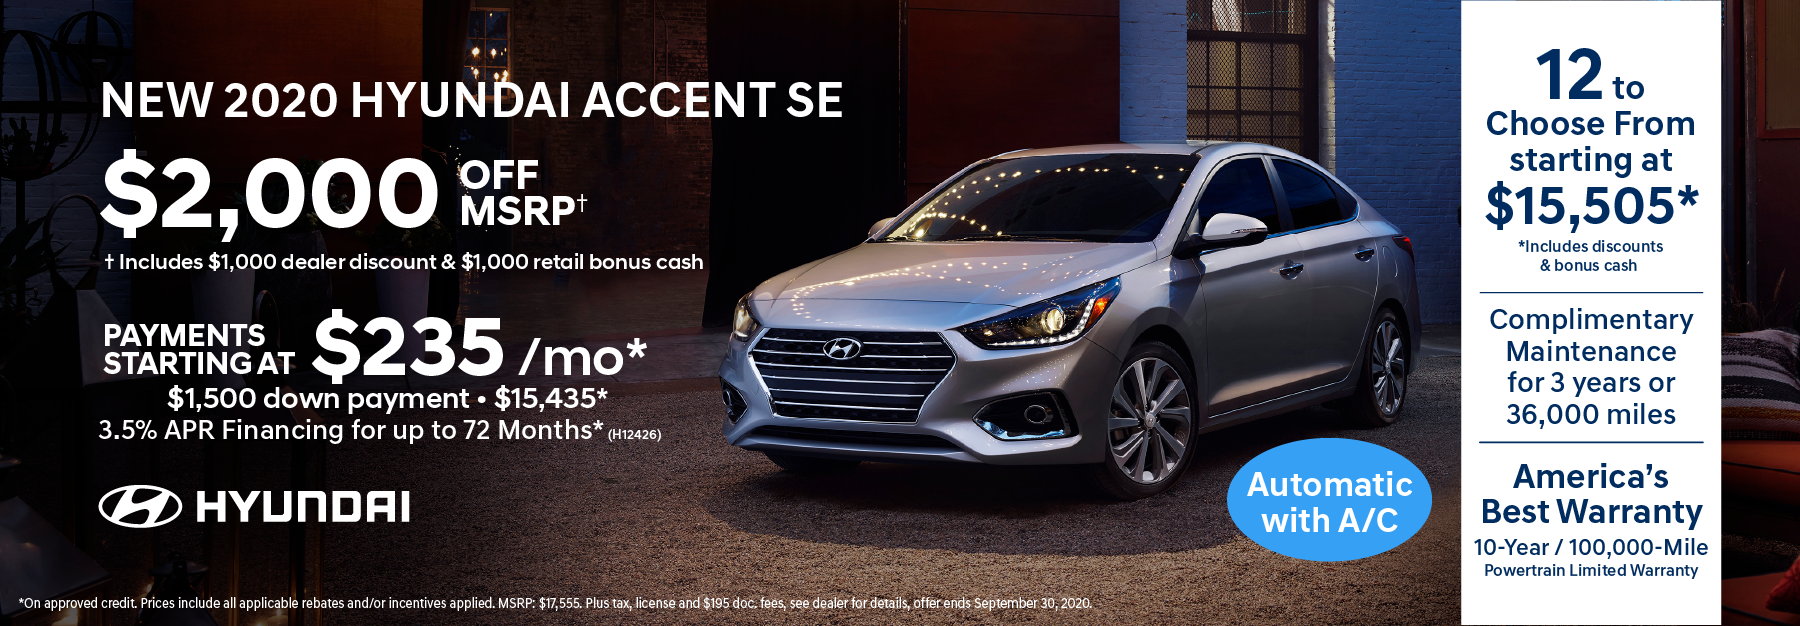 2020 Accent $2,000 off msrp